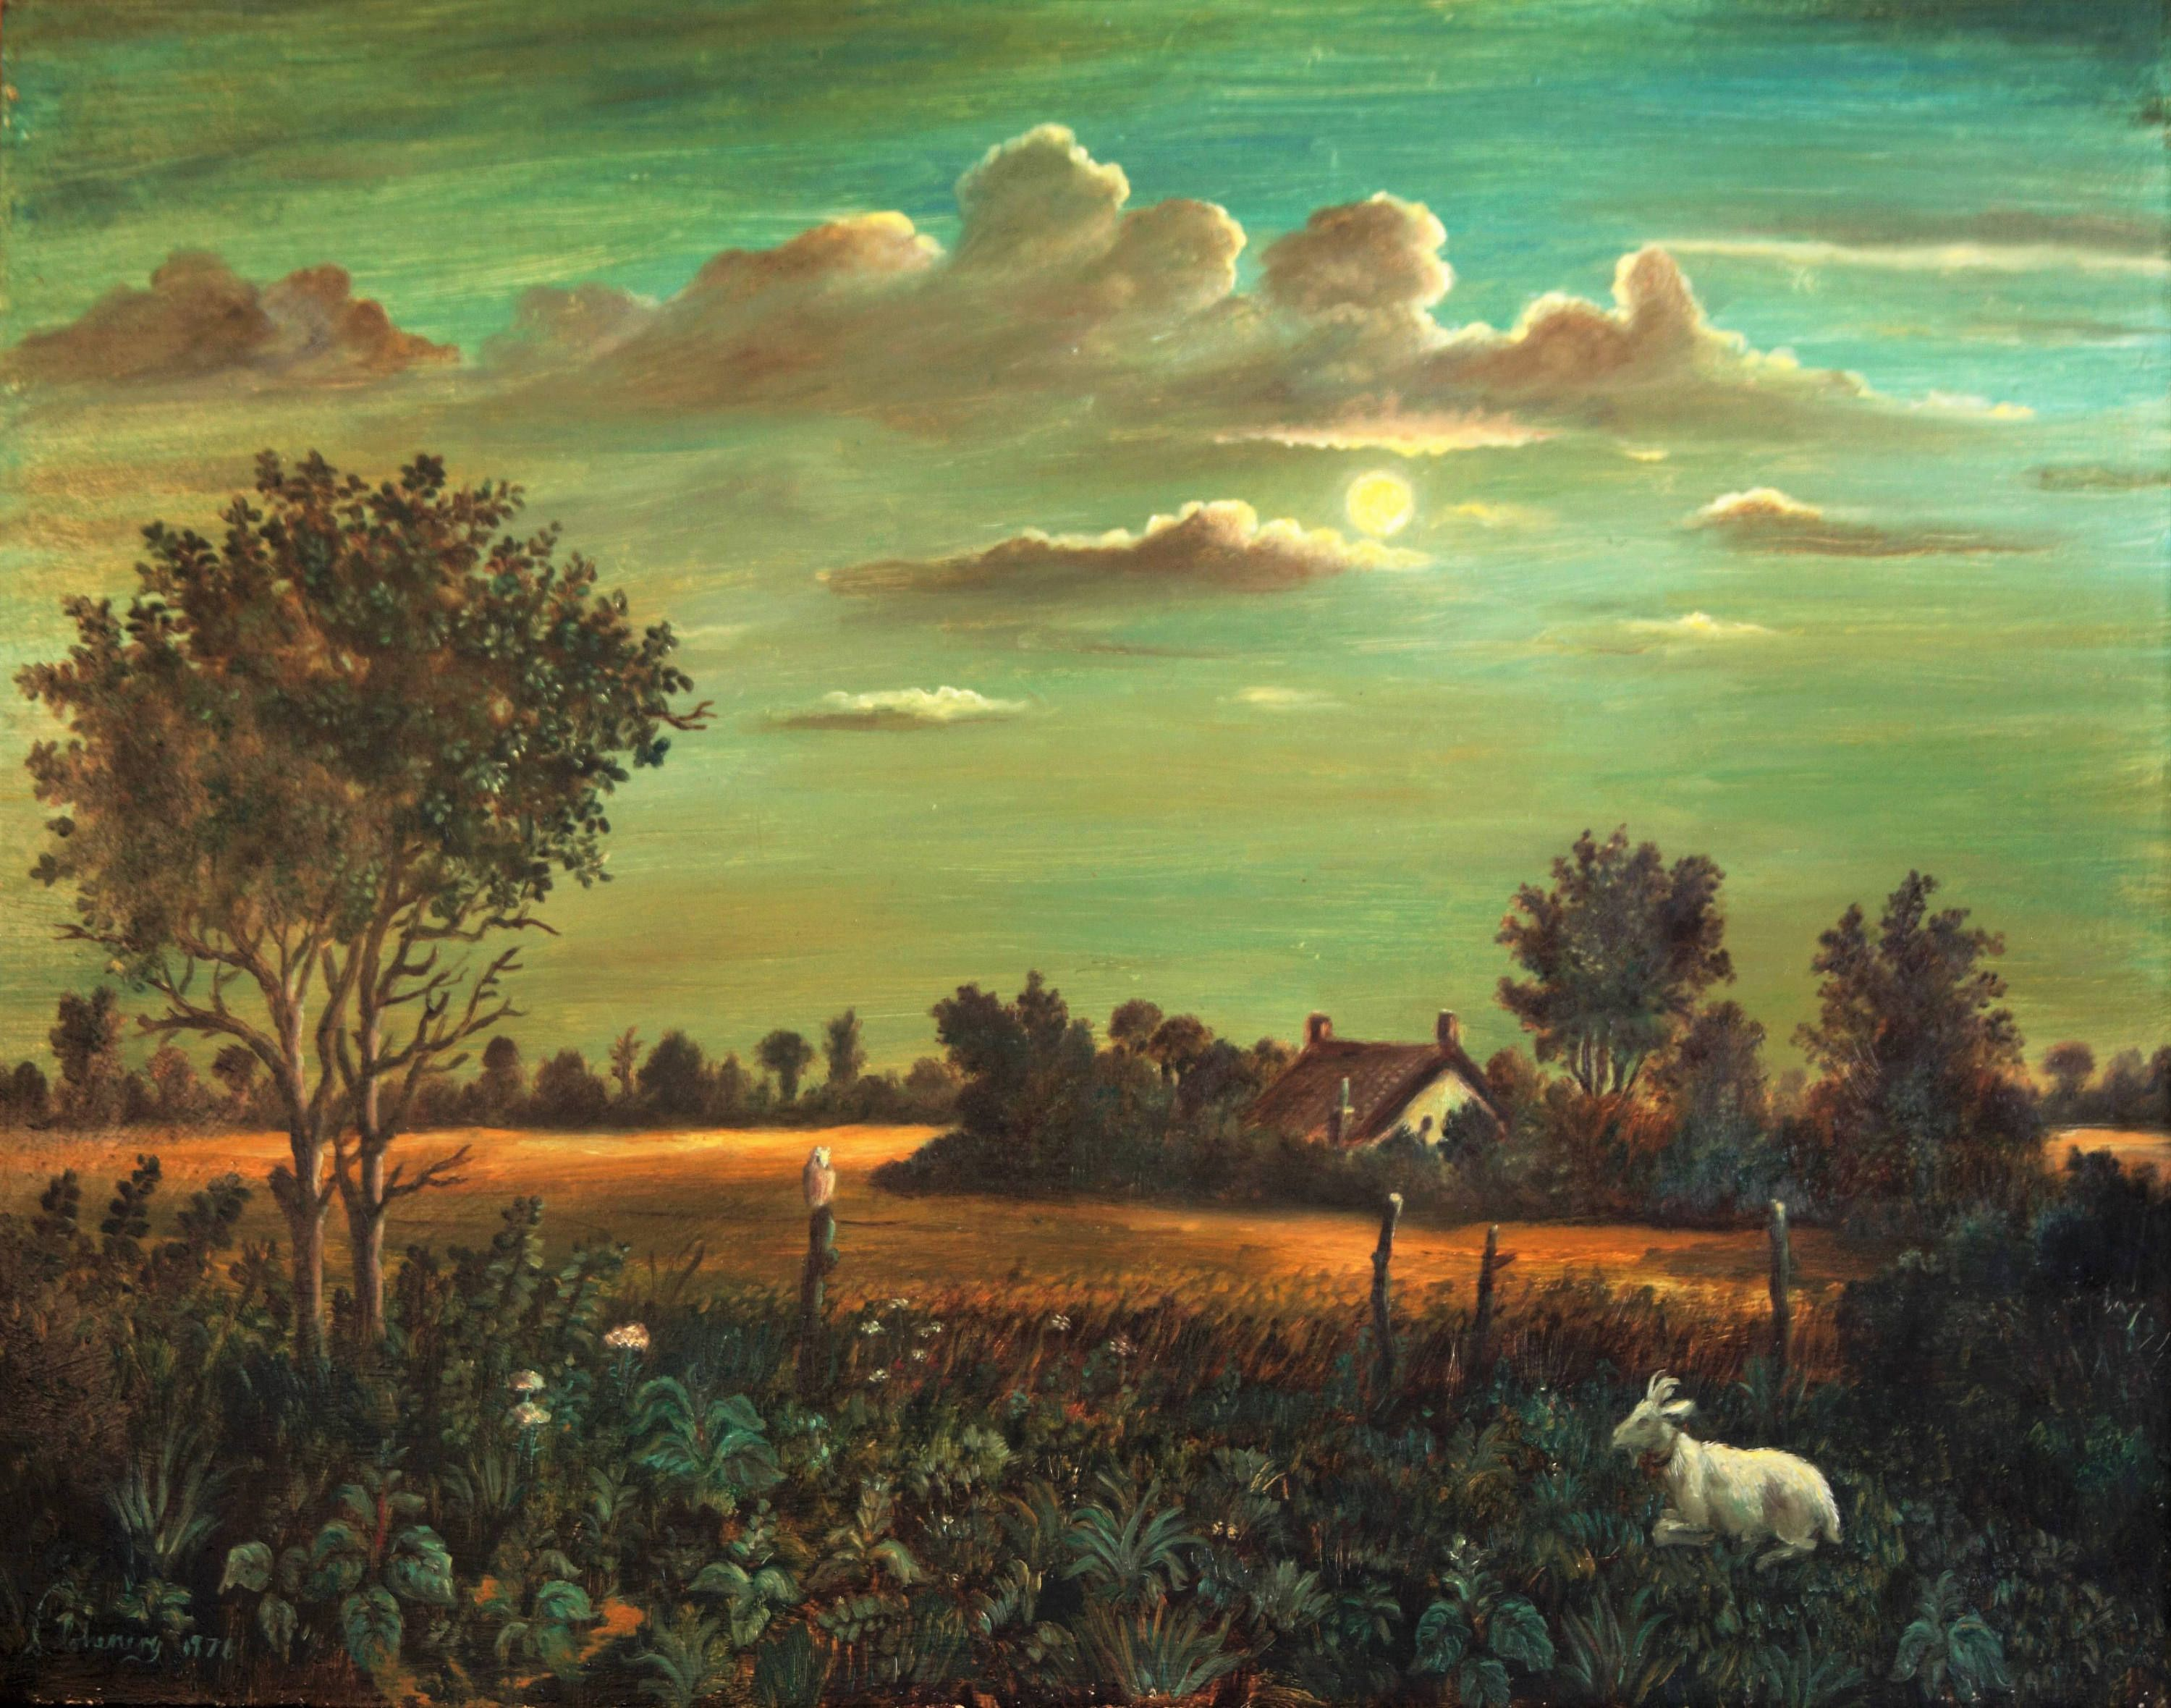 Goat And Owl In A Moonlit English Farm Landscape Oil Painting Etsy Oil Painting Landscape Vintage Landscape Moonlight Painting